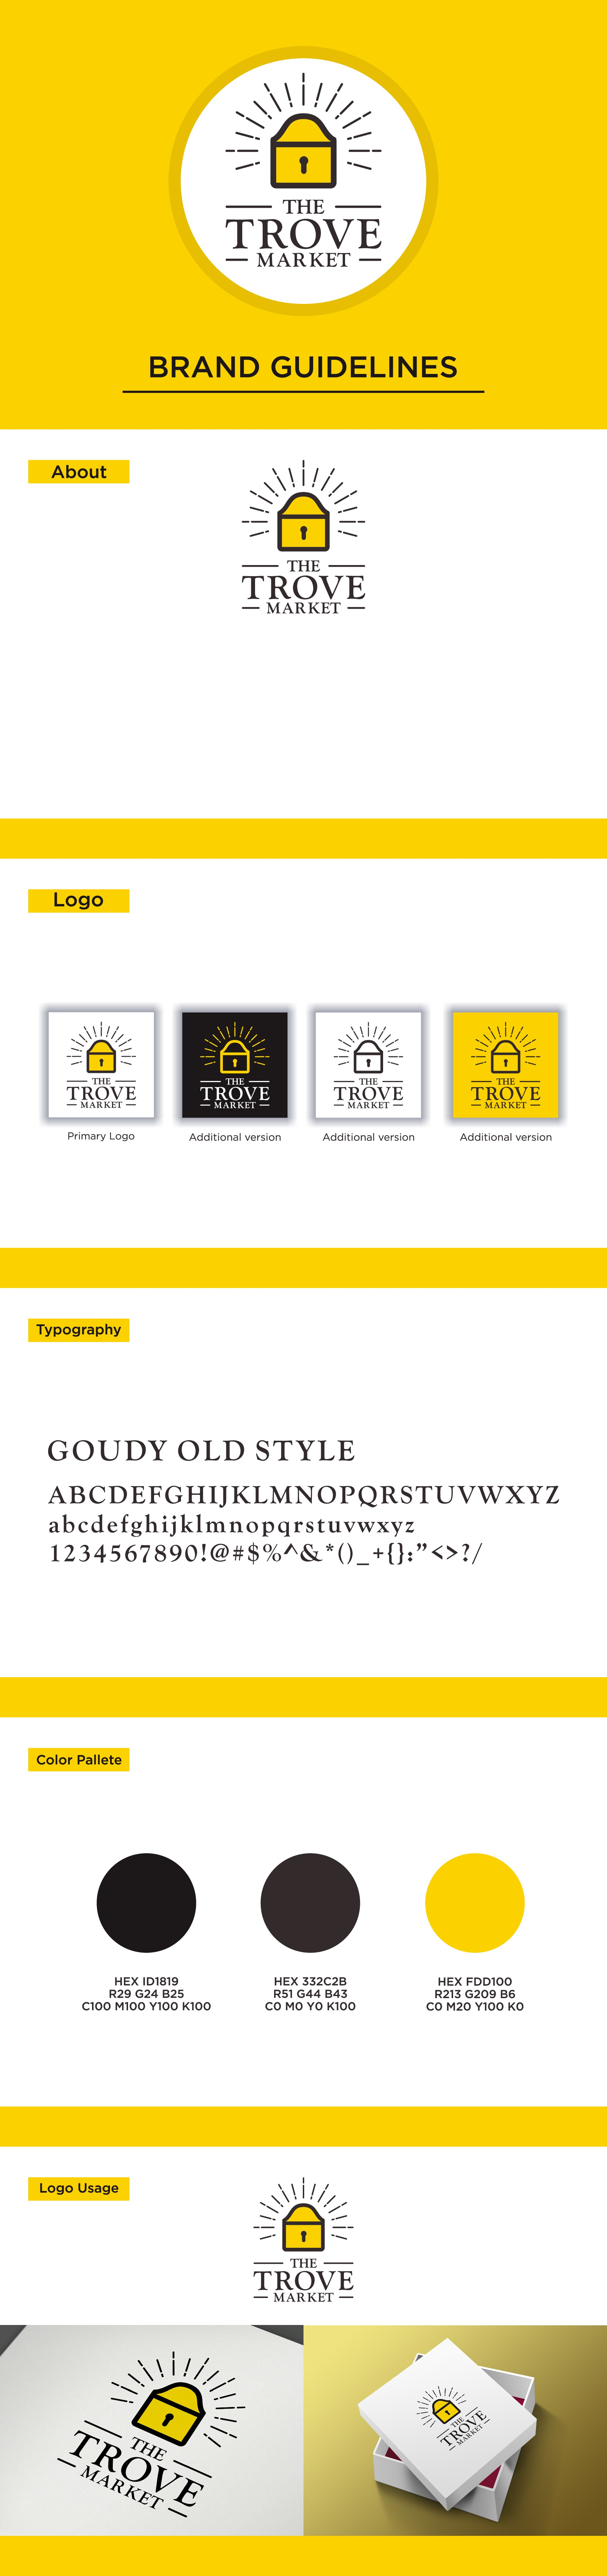 Design a logo for online retail store with classic vibe